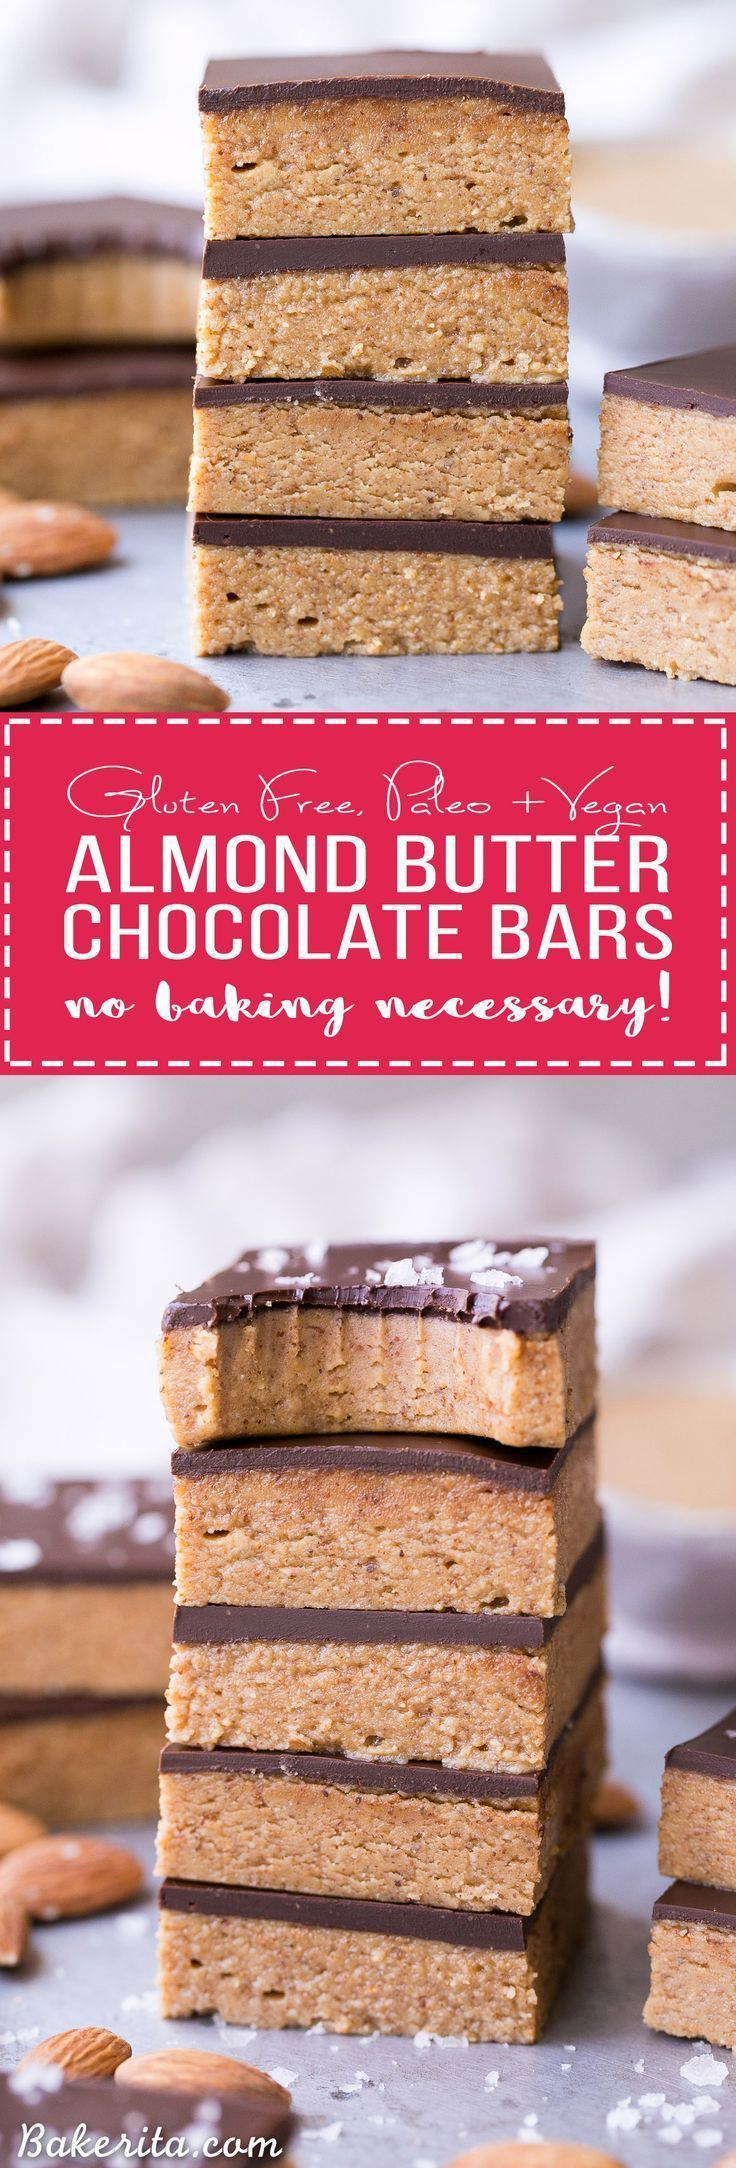 These No Bake Chocolate Almond Butter Bars are easy to make with just five ingre…